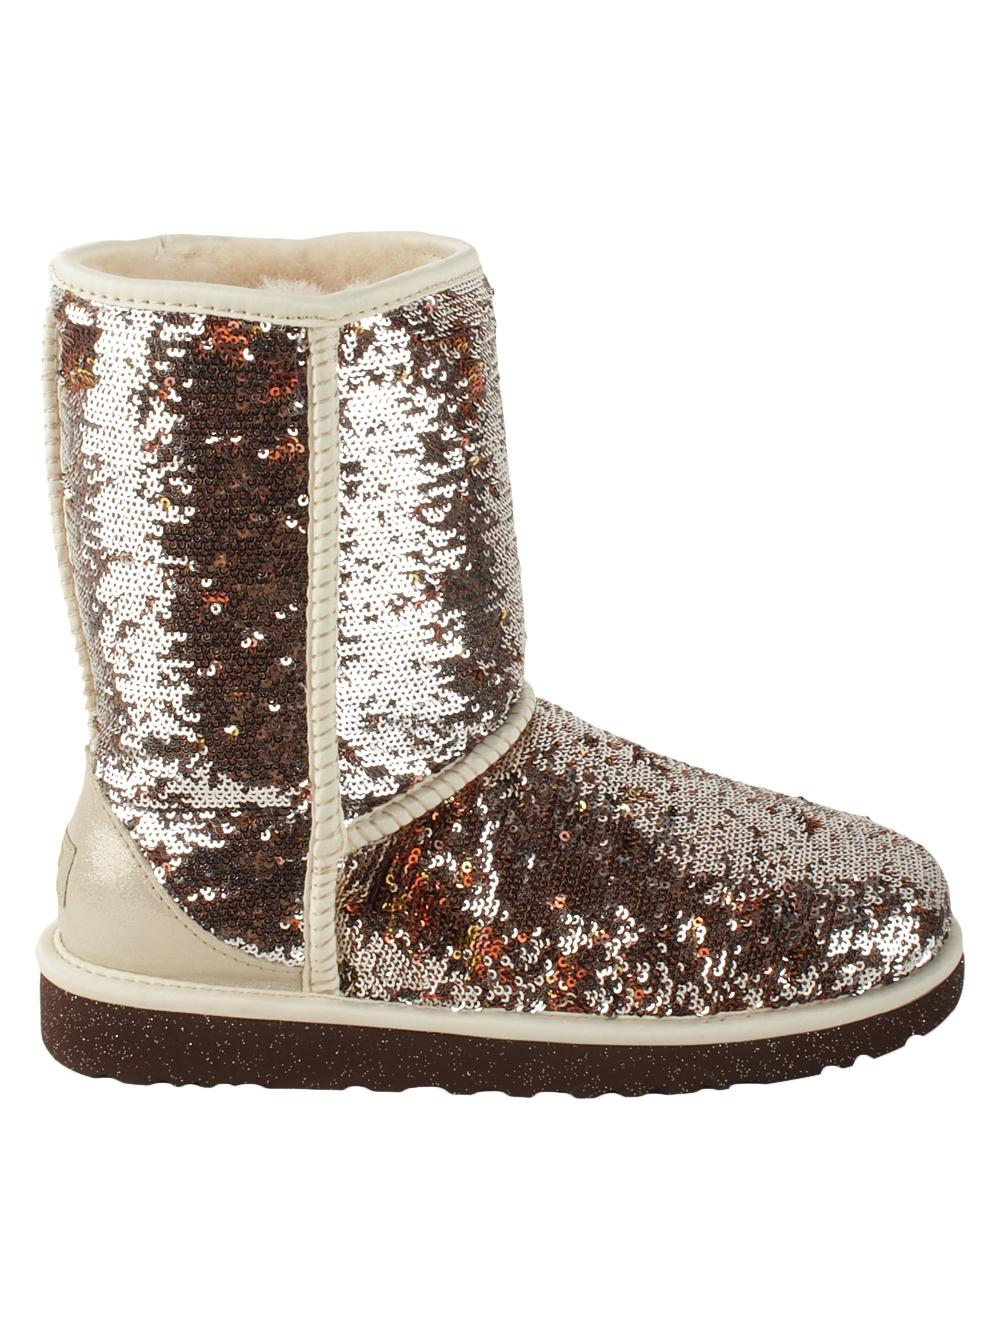 UGG Australia Champagne Sequin Metallic Classic Boots/Booties